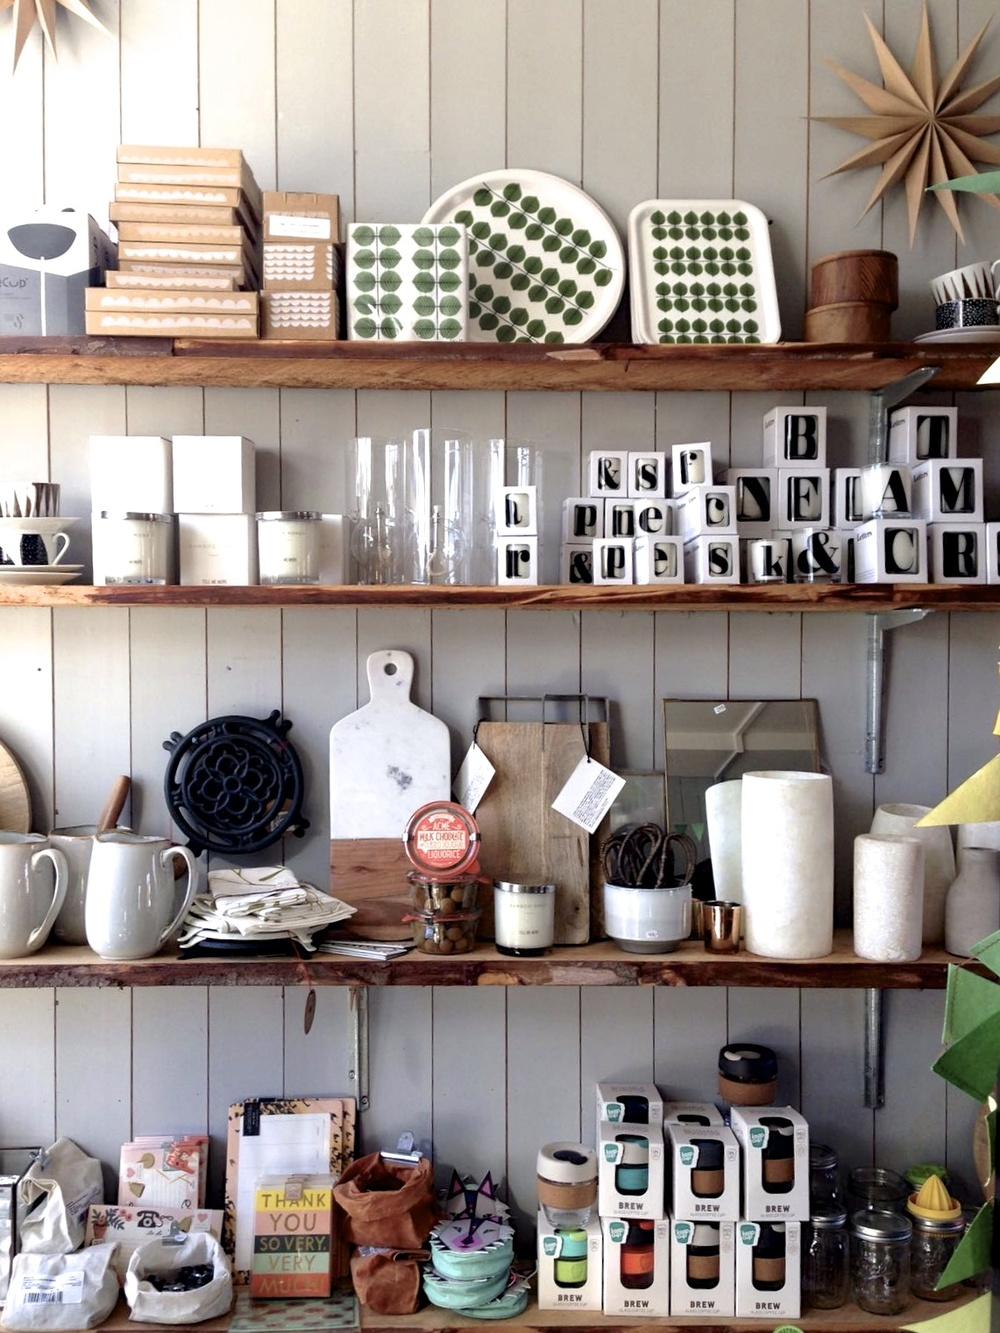 Café Flora also sells beautiful scandinavian inspired products.